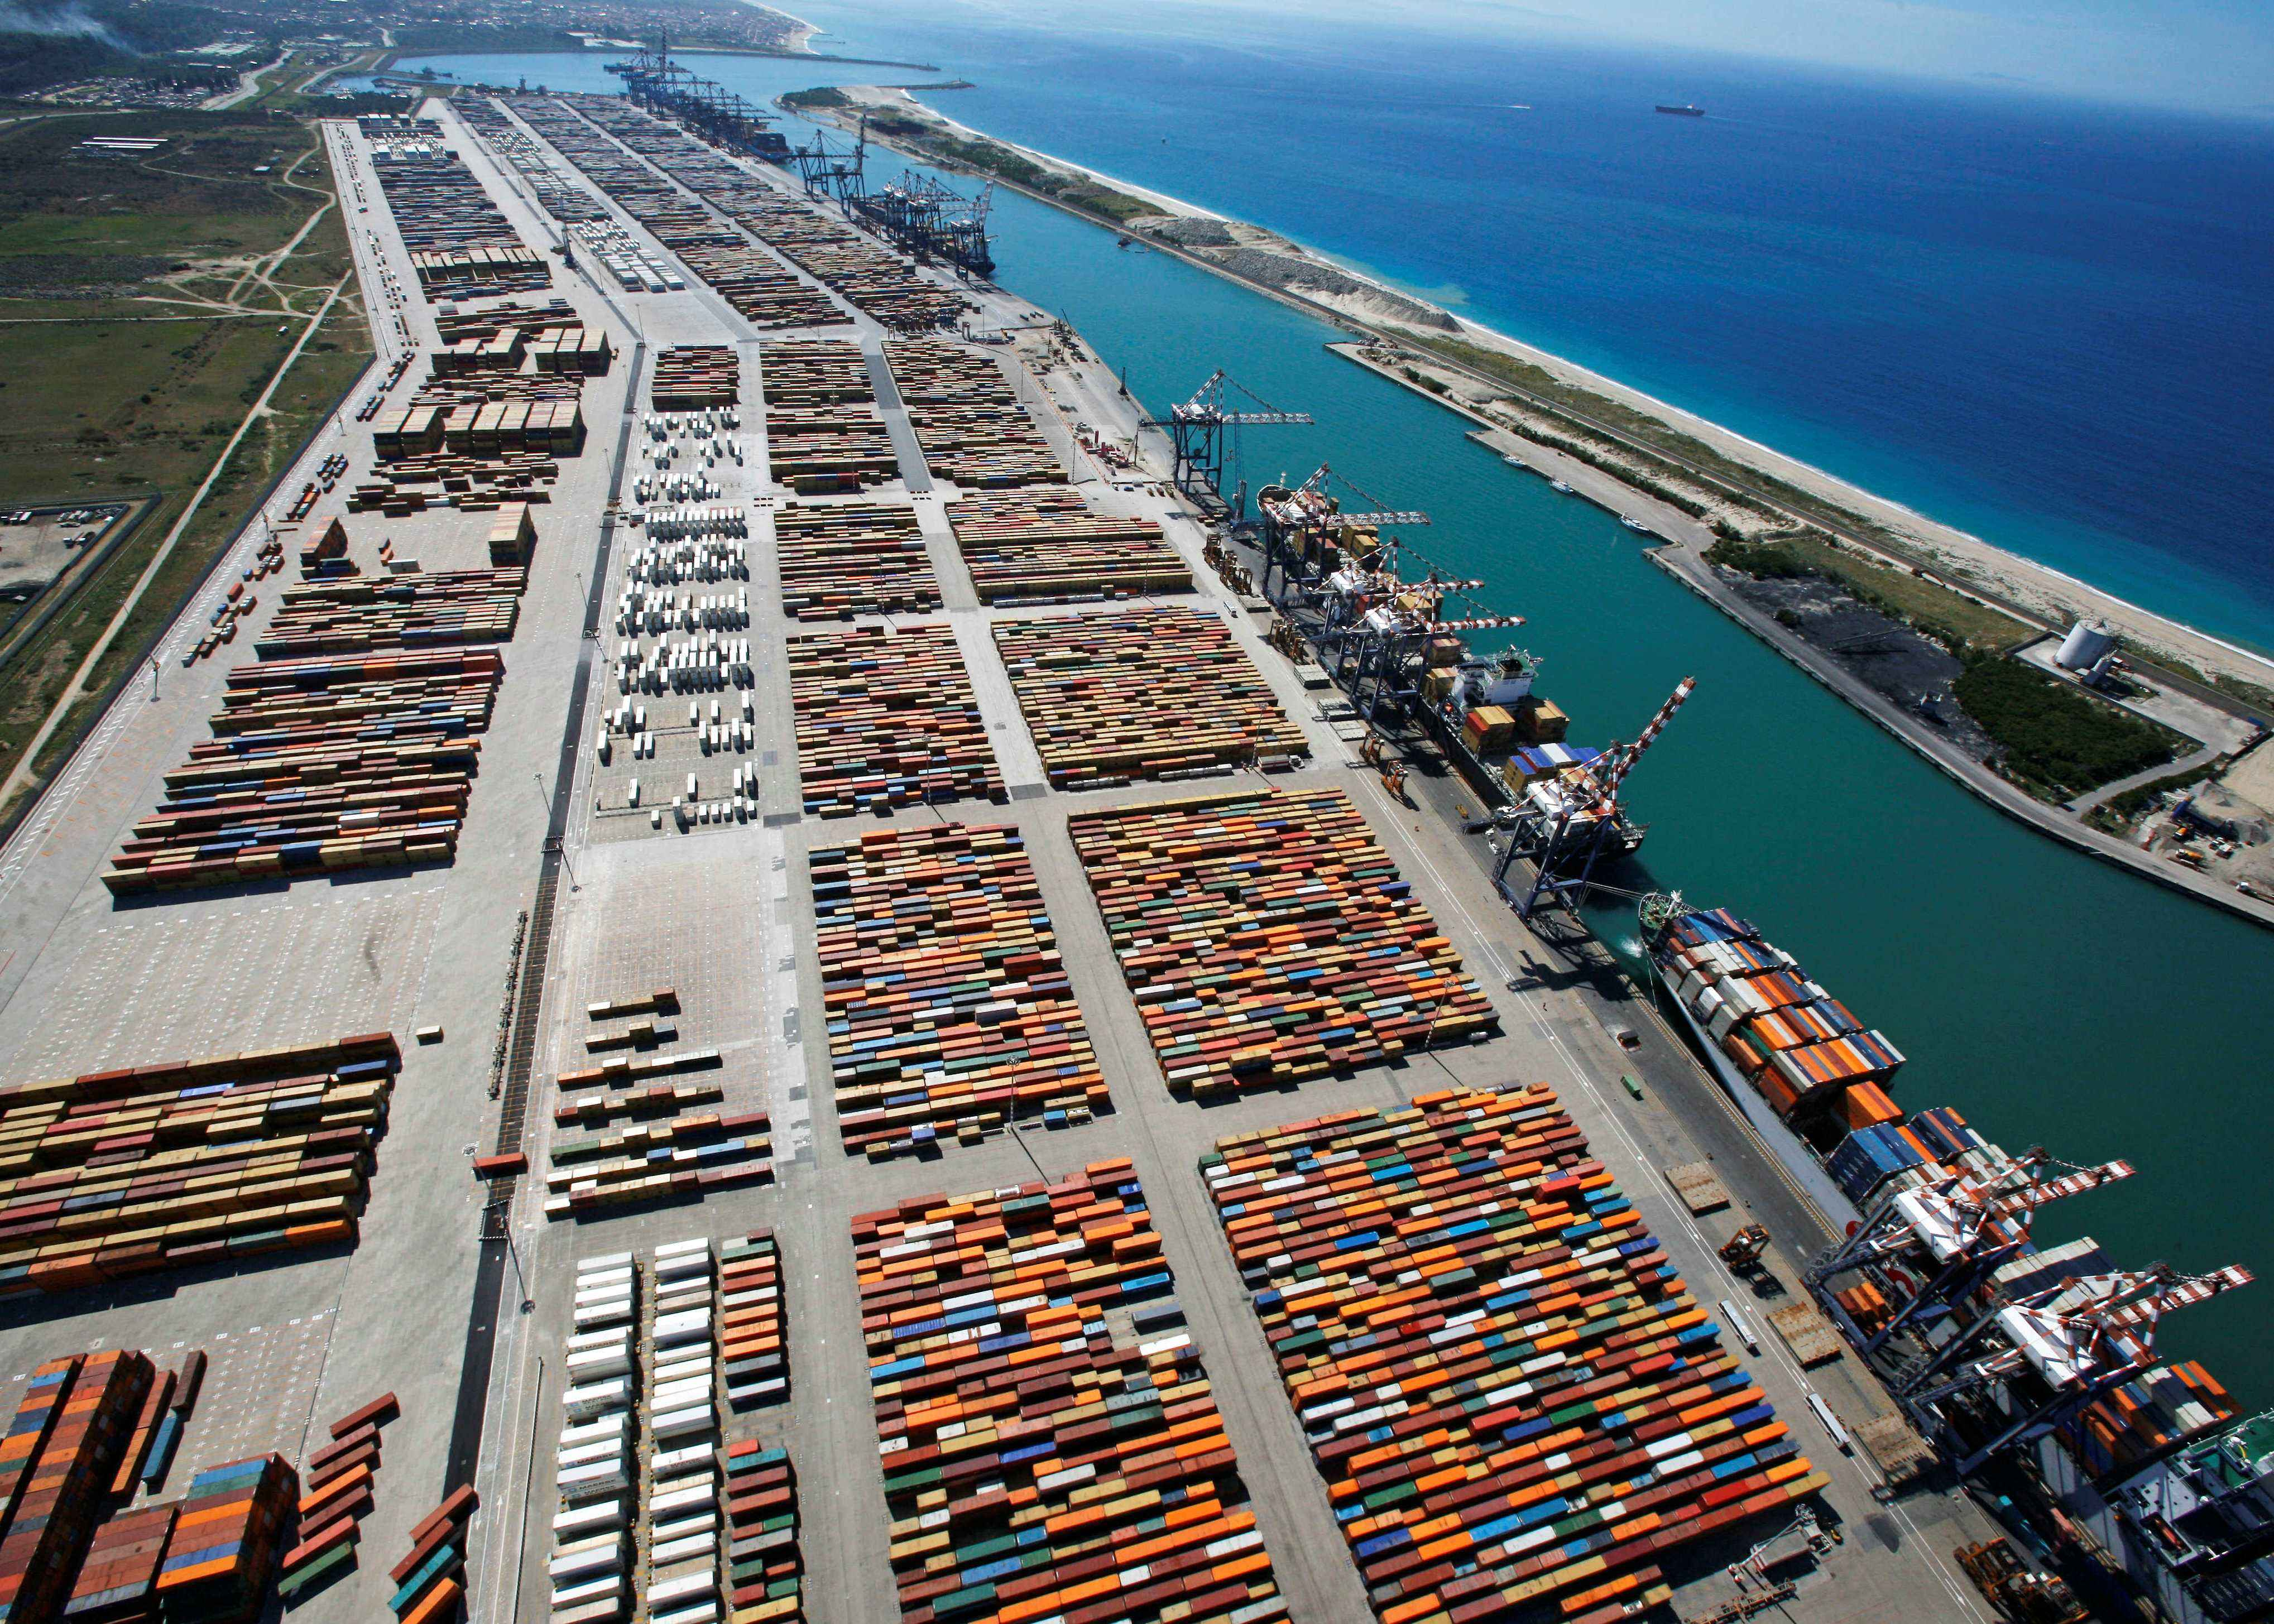 gioia tauro the largest ports in europe